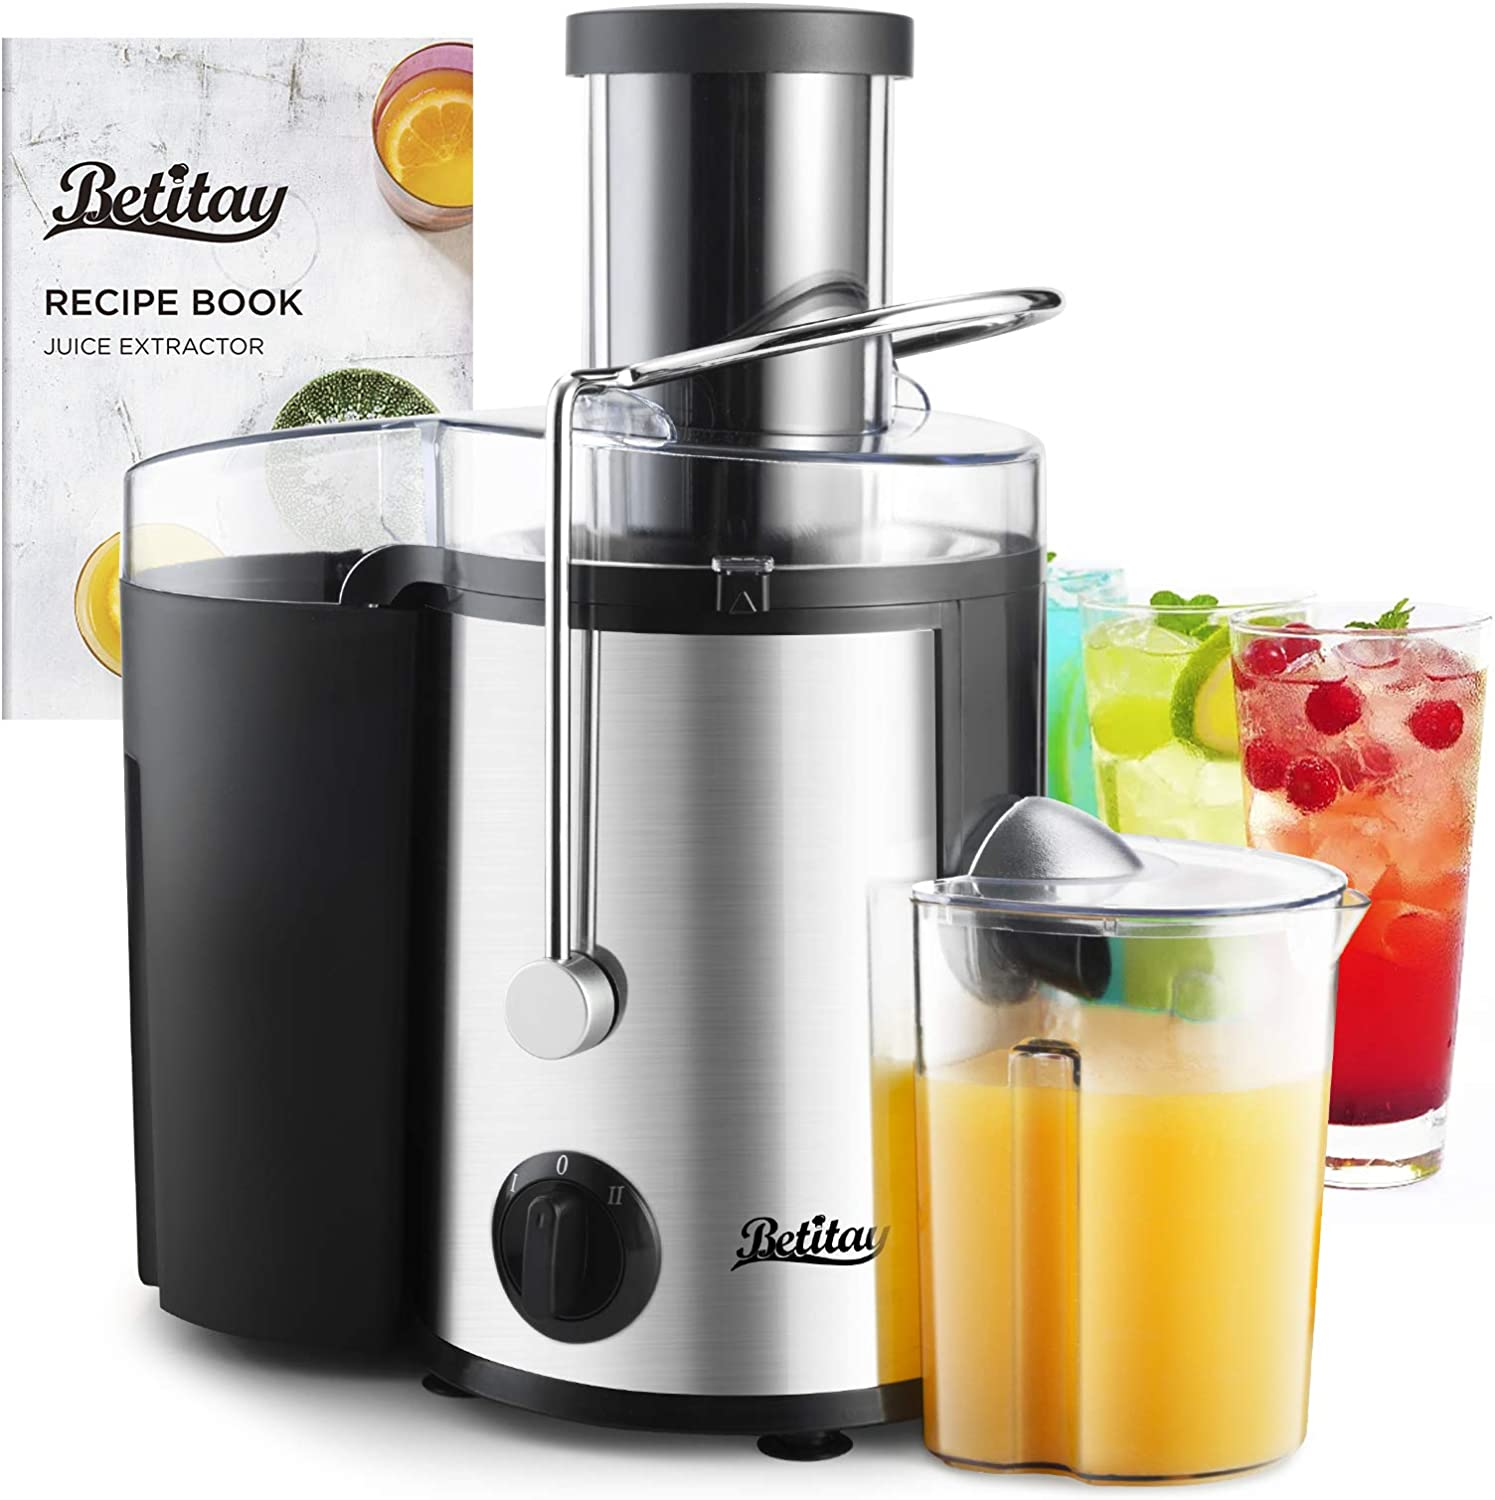 Betitay Juice Extractor Maker with Recipe,Detachable Dual Speed Centrifugal Juicer Machine with Anti-Drip Wide Feed Chute and BPA-Free Pusher and Container,Filter with Built-in SS304 Blade for Fruits and Vegetables,Plus Cleaning Brush